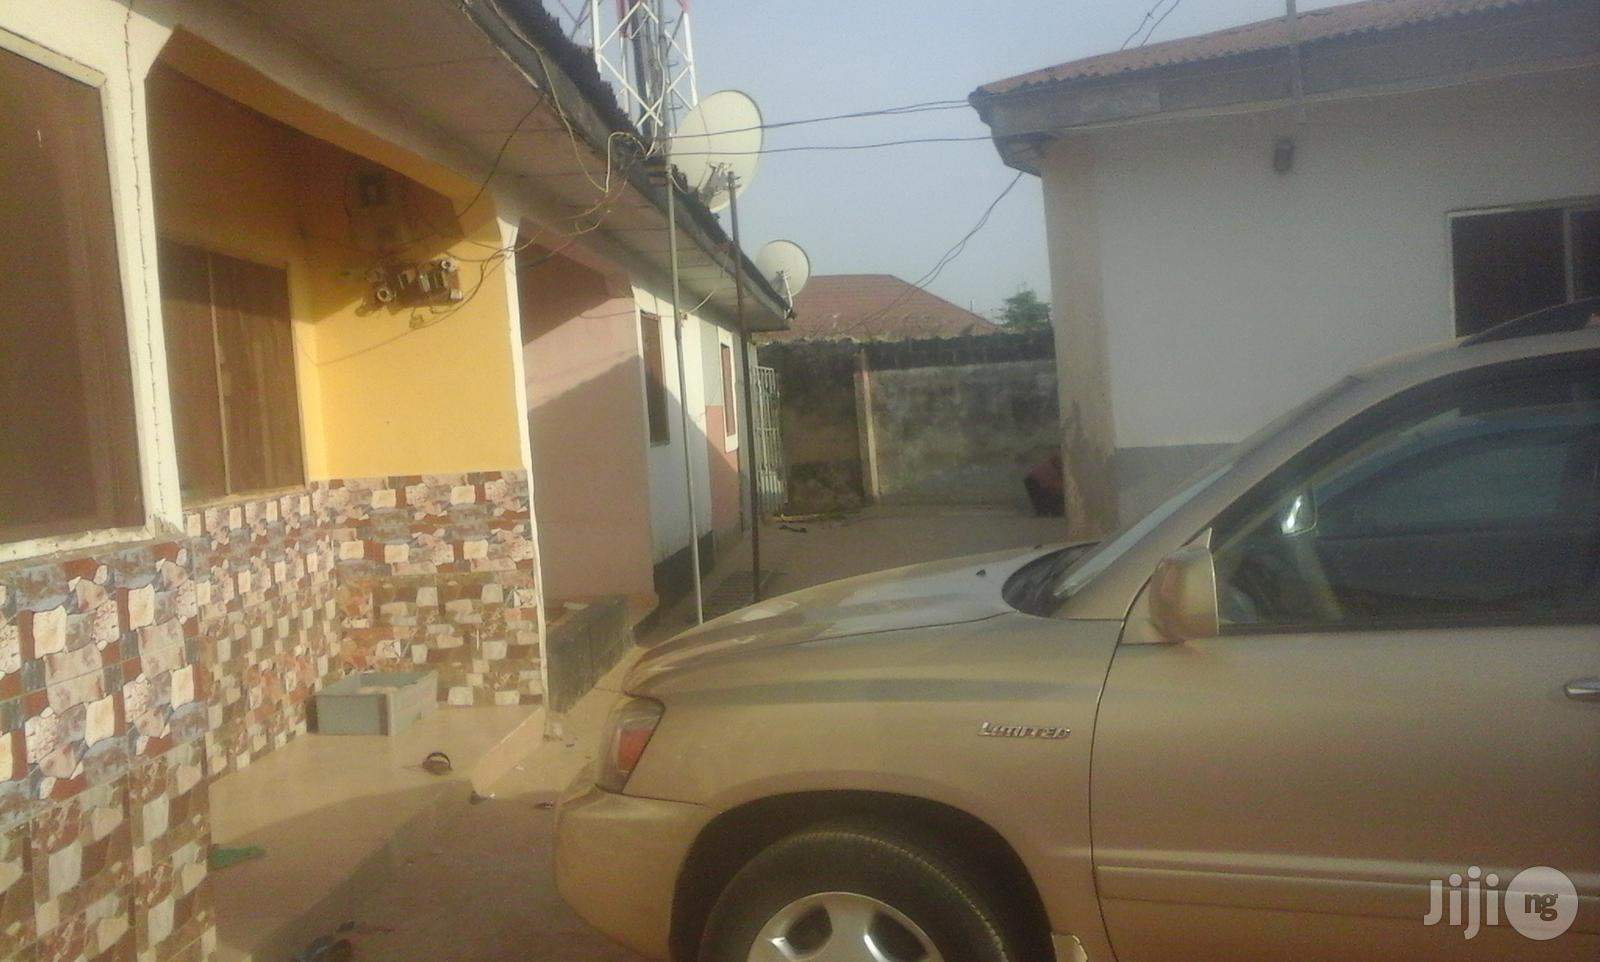 Cheap Sale! A 2 Bedroom Semi-Detach Govt Flat in Kubwa | Houses & Apartments For Sale for sale in Kubwa, Abuja (FCT) State, Nigeria